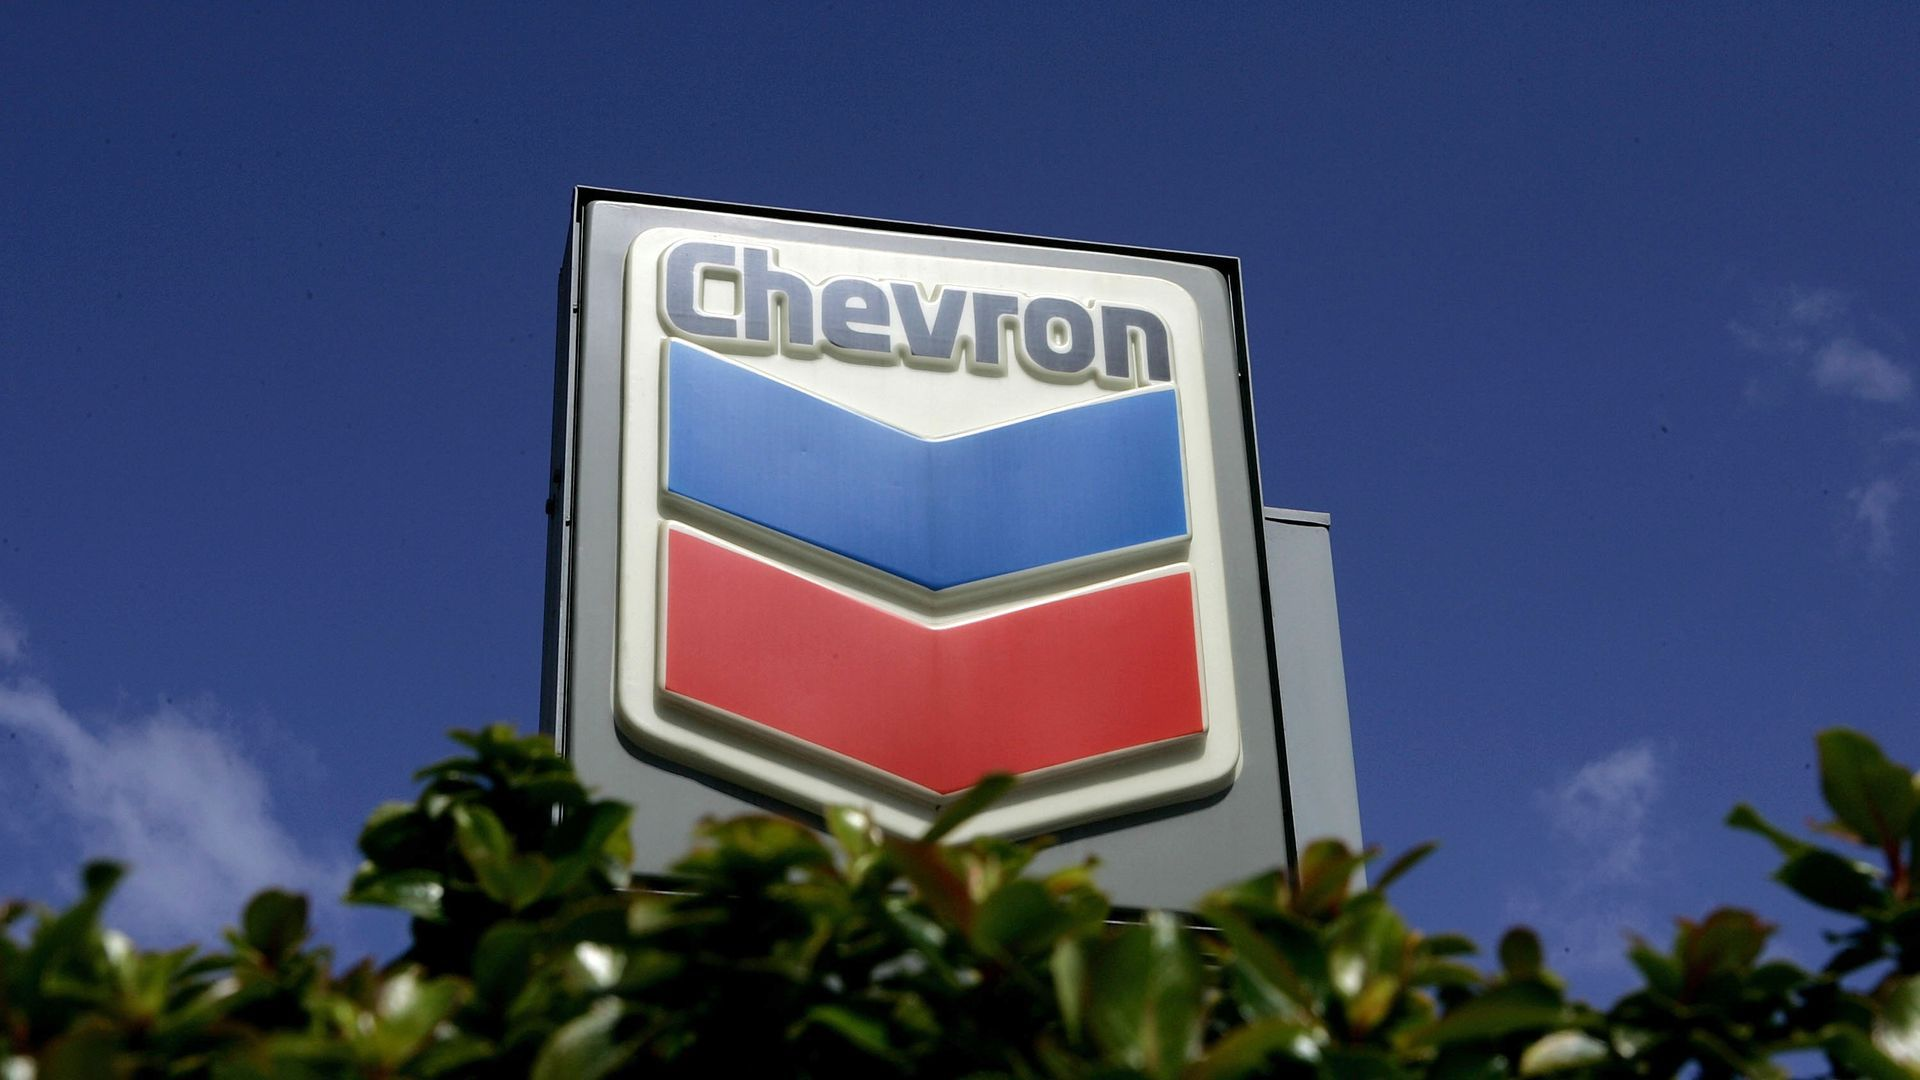 Chevron sign outside